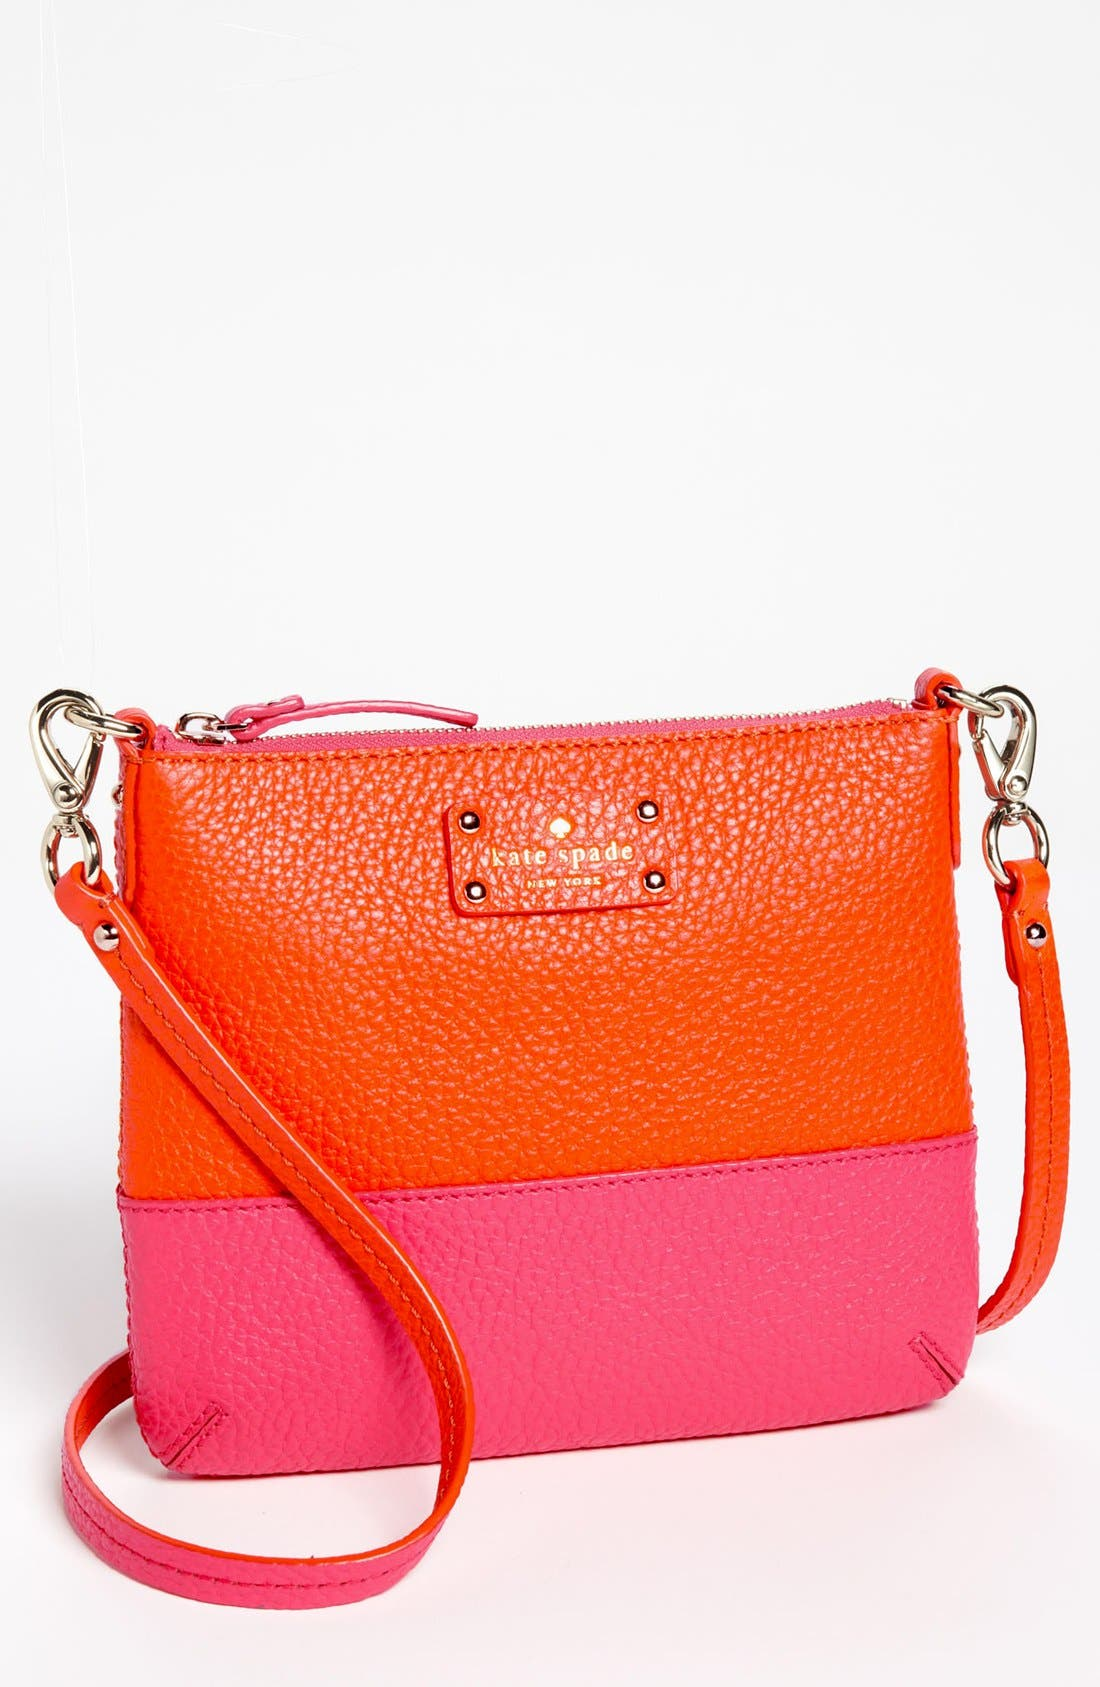 Main Image - kate spade new york 'grove park - tenley' crossbody bag